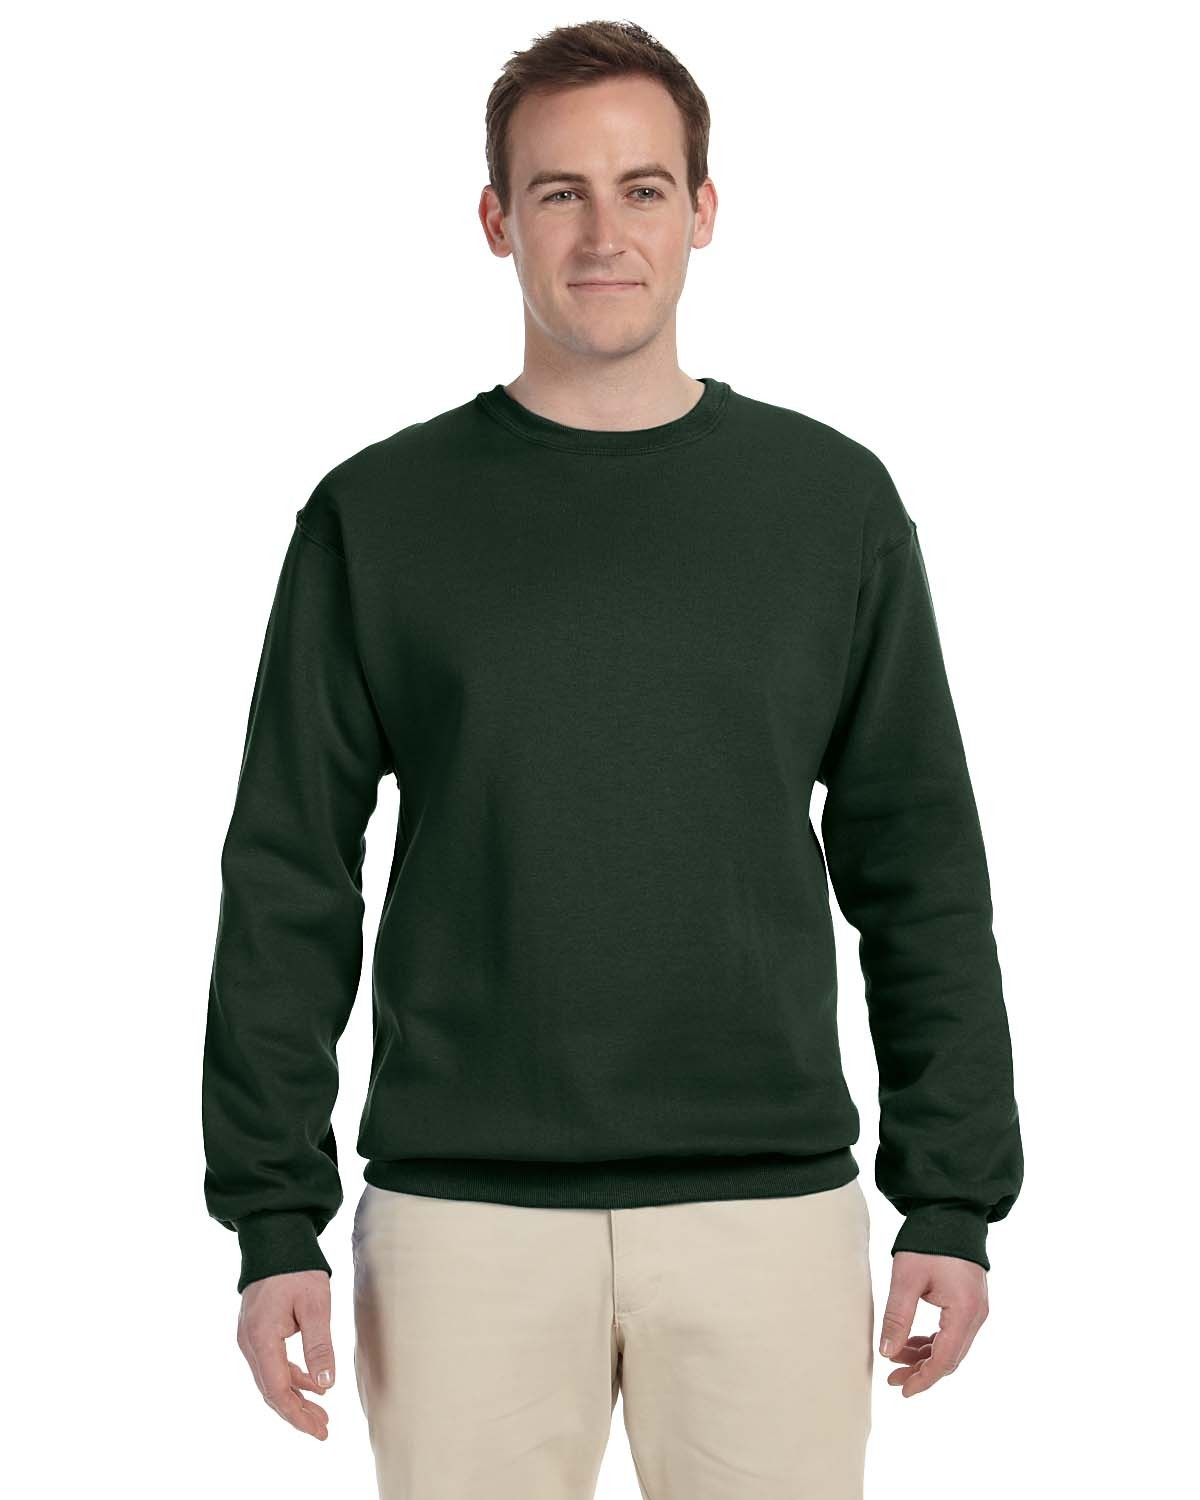 82300 Fruit of the Loom FOREST GREEN